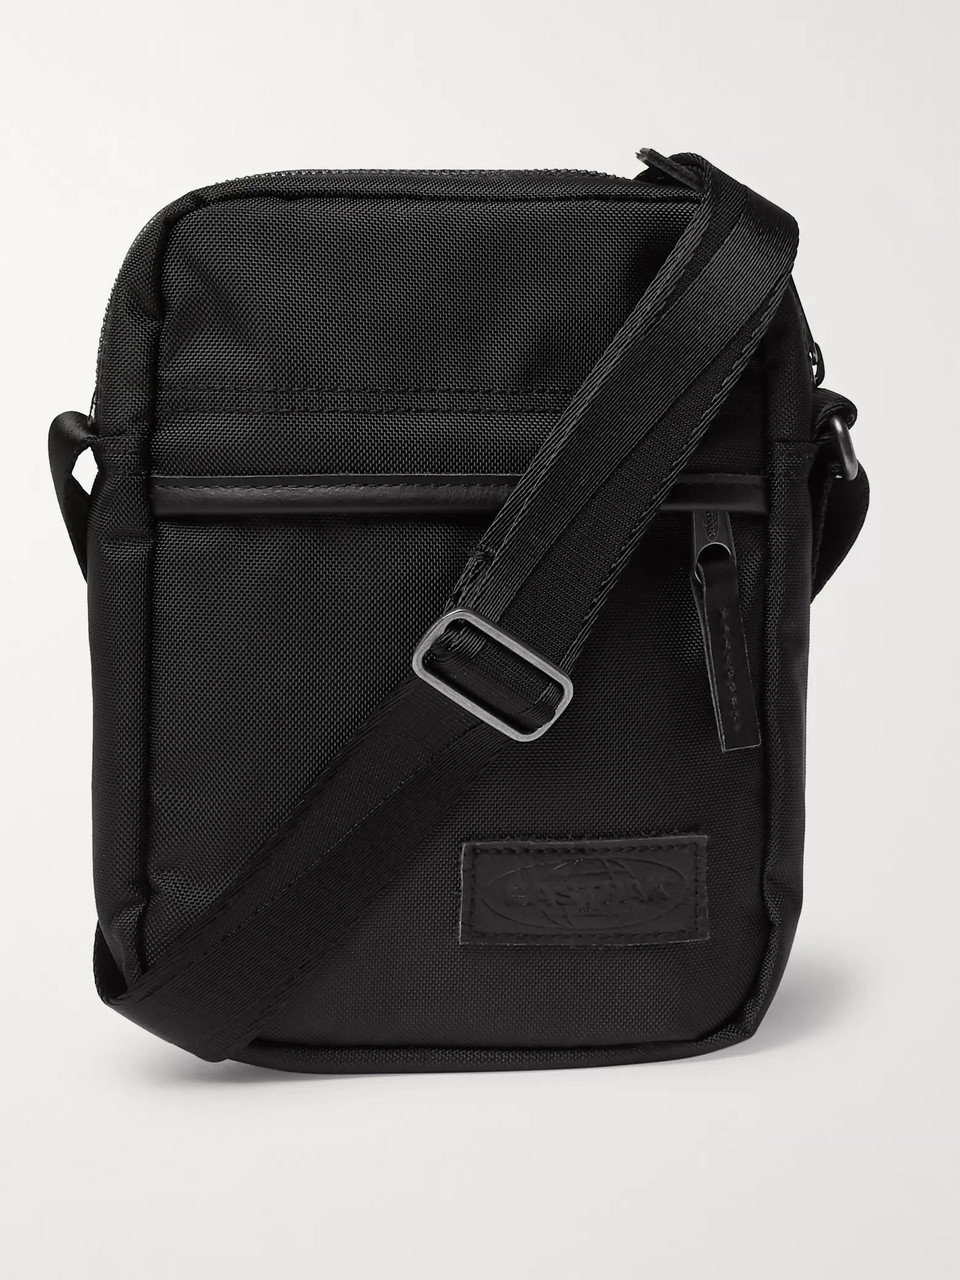 Eastpak The One Canvas Messenger Bag